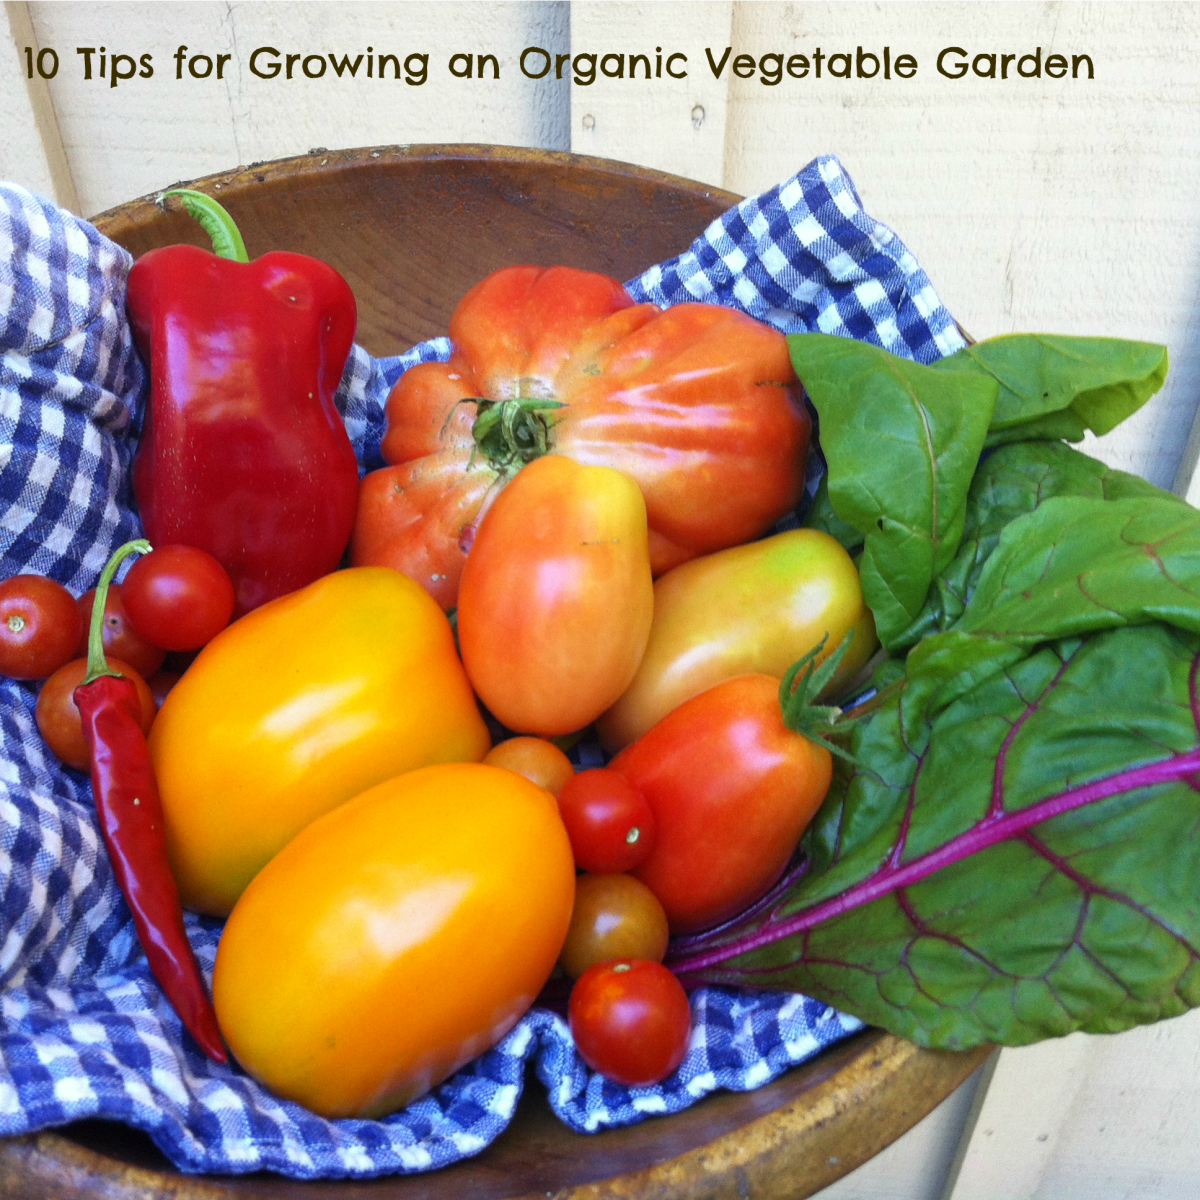 There's nothing like fresh vegetables from your own garden!